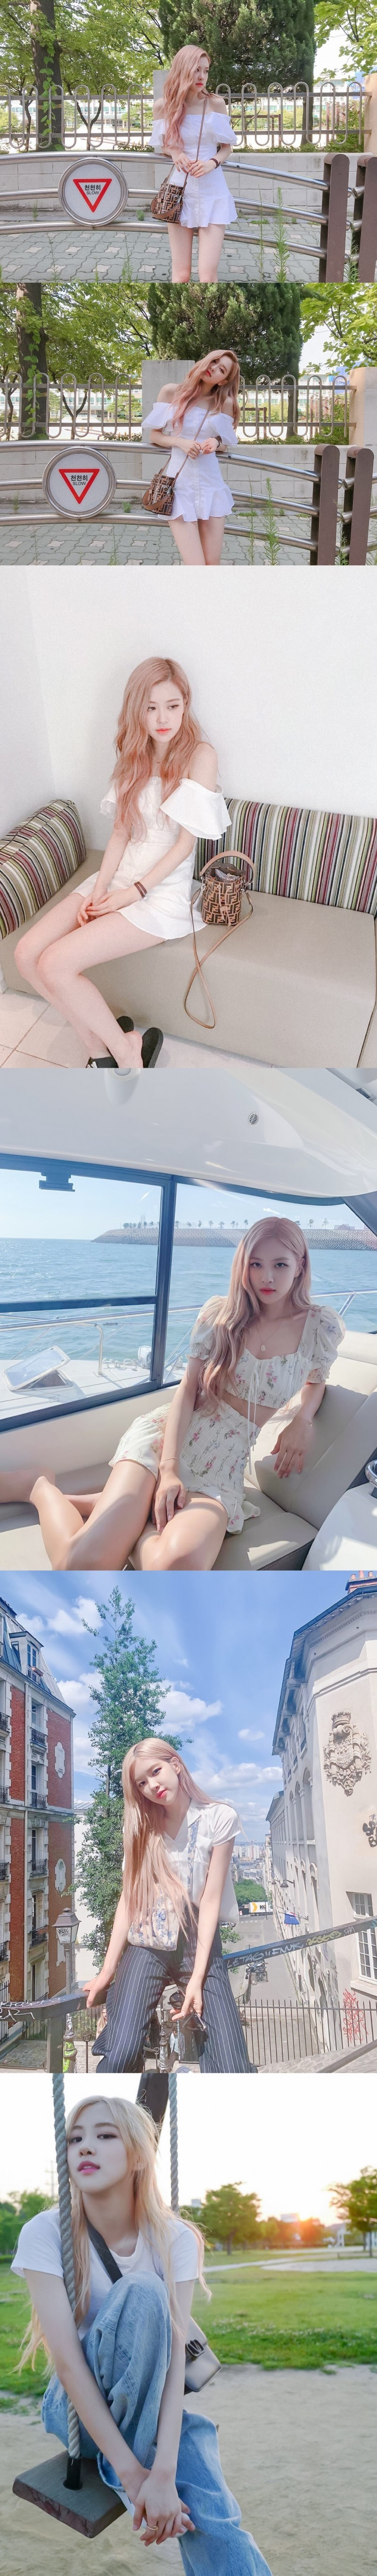 【6upoker】Roses are rosie / 朴彩英 